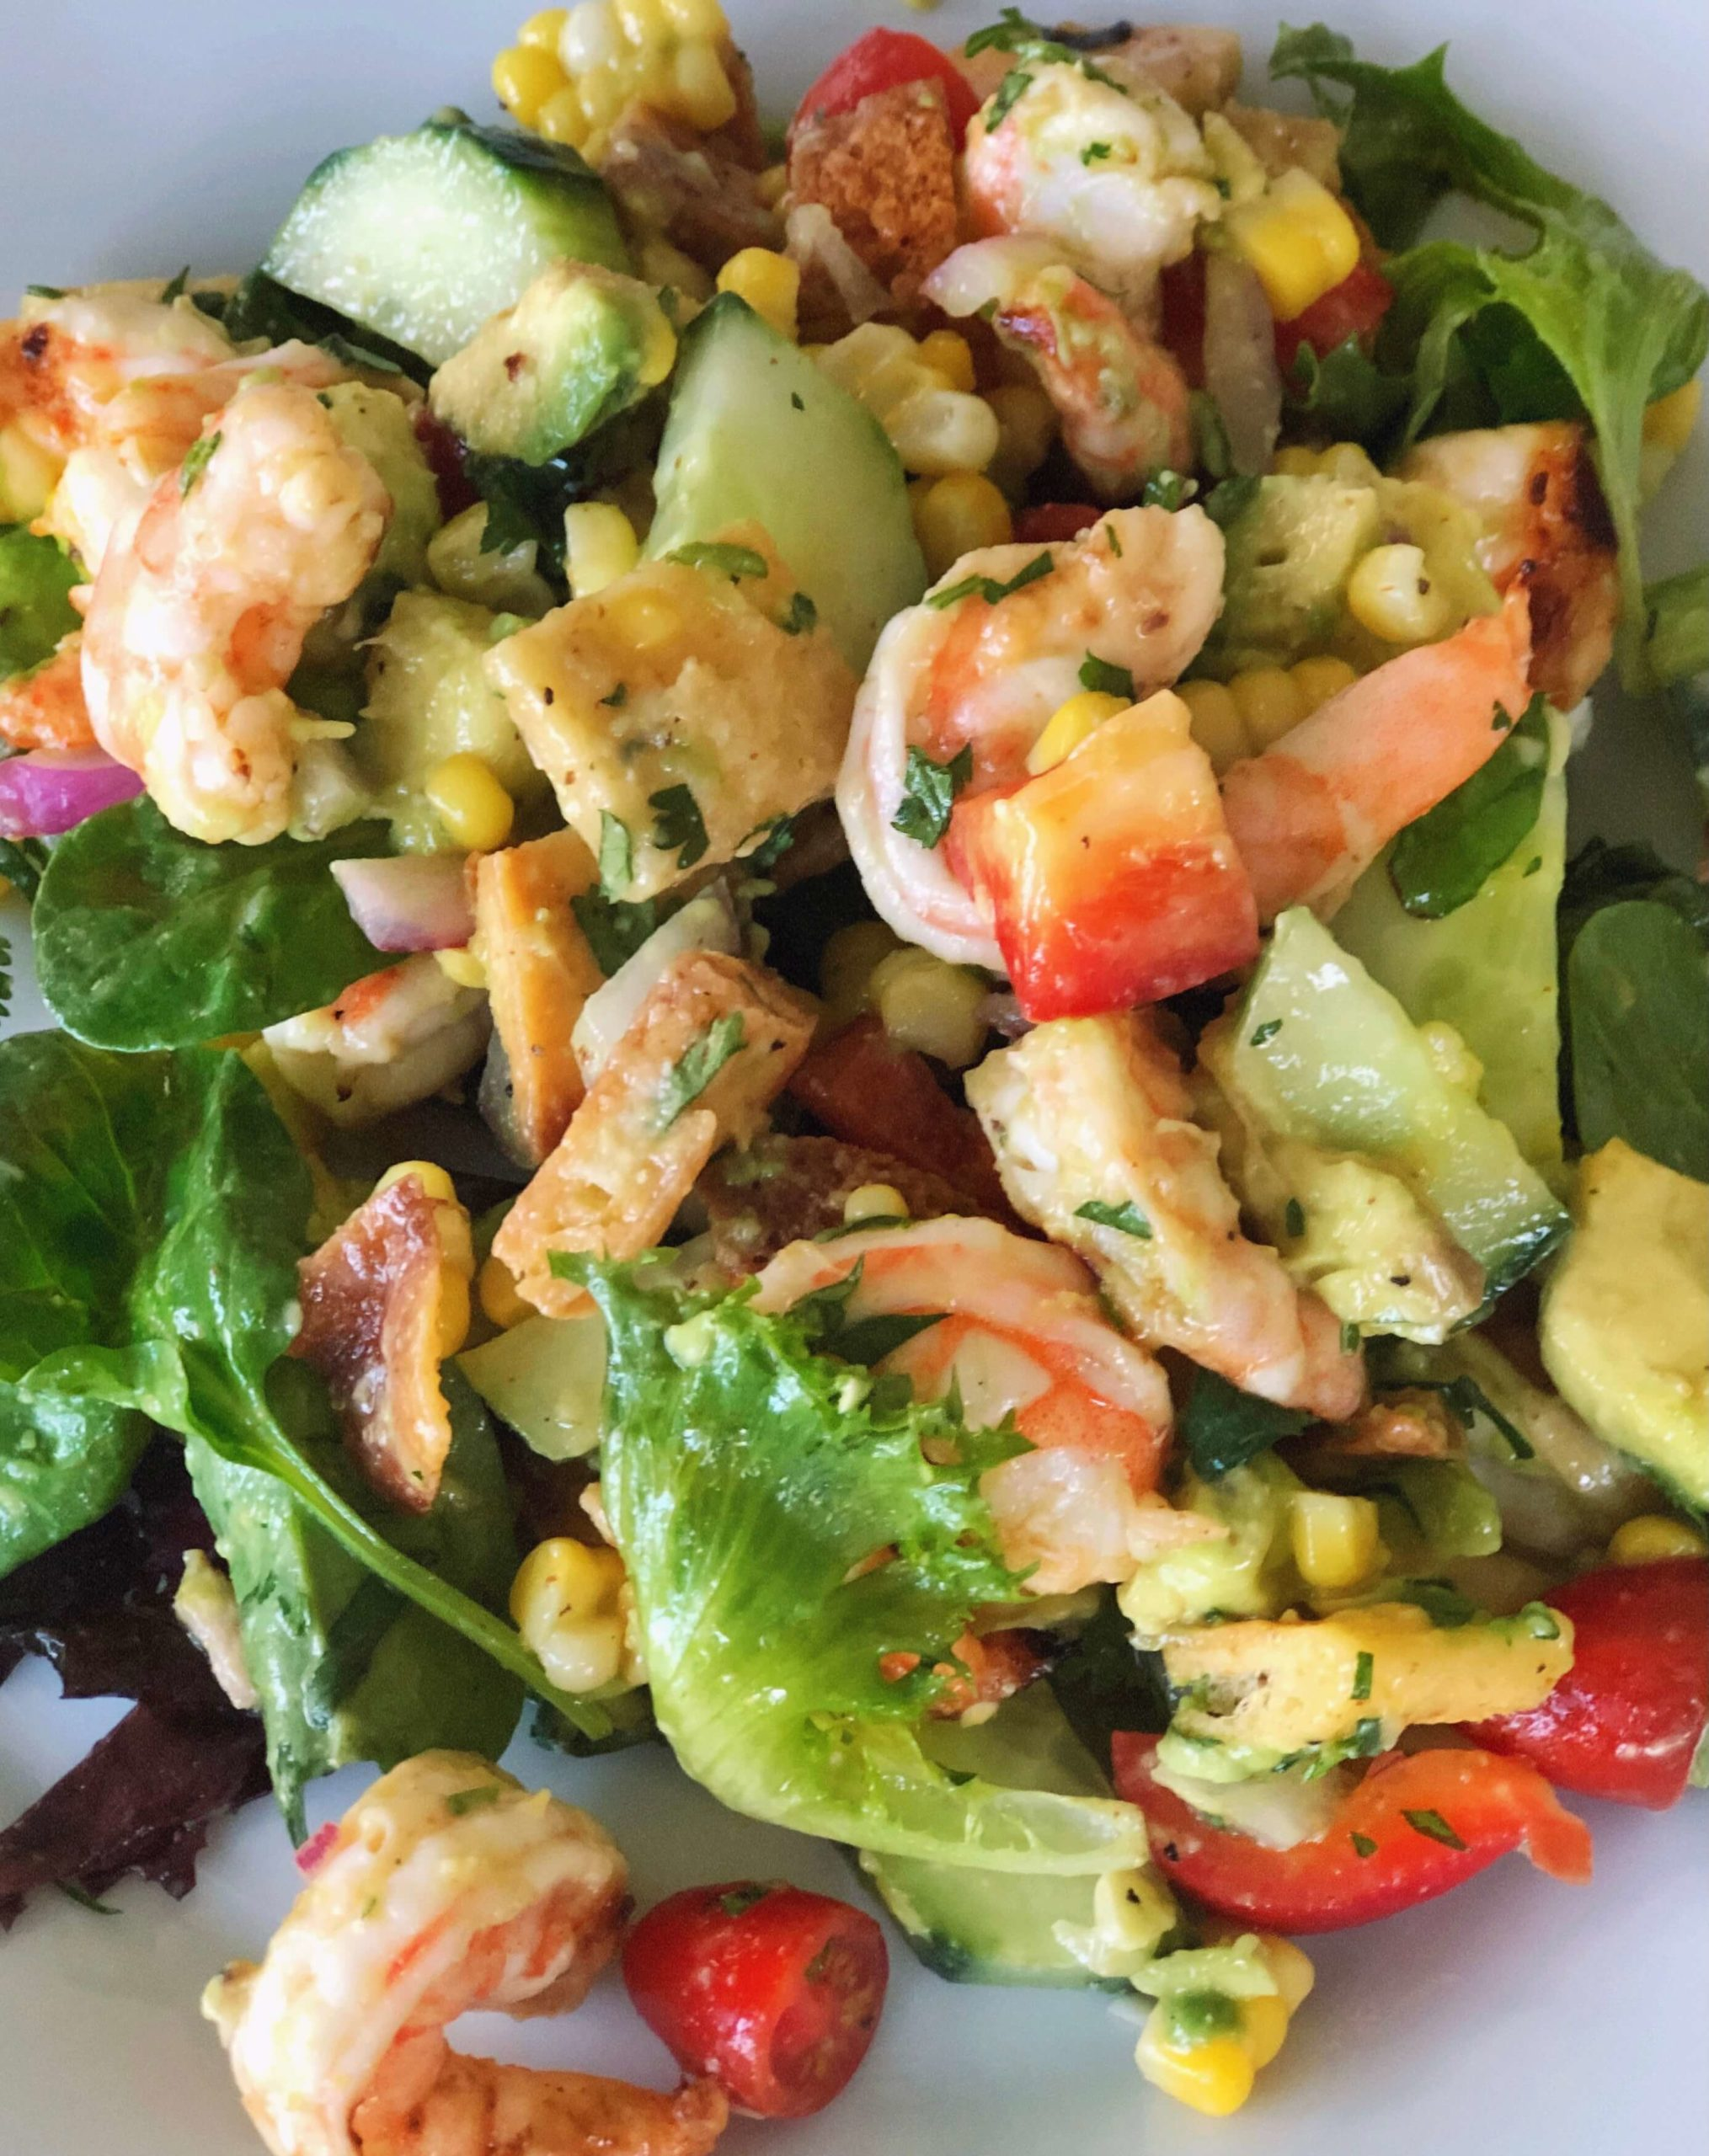 Picture of the Shrimp and Avocado Summer Salad on a plate